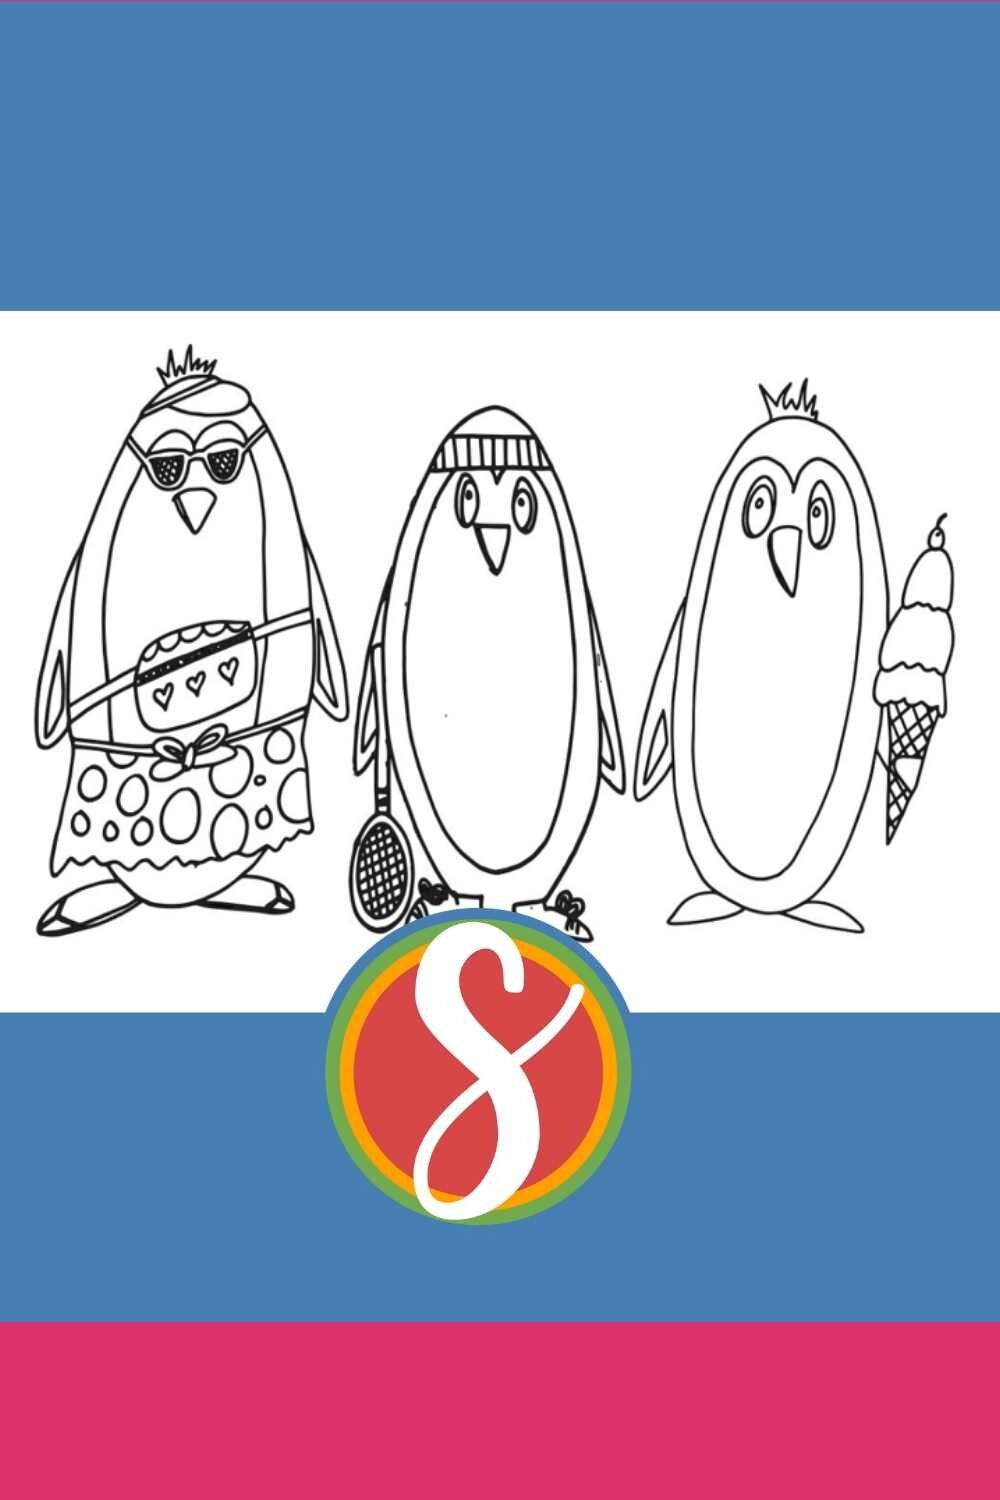 3 Cool Guy Penguin Coloring Page - free to print and color from Stevie Doodles